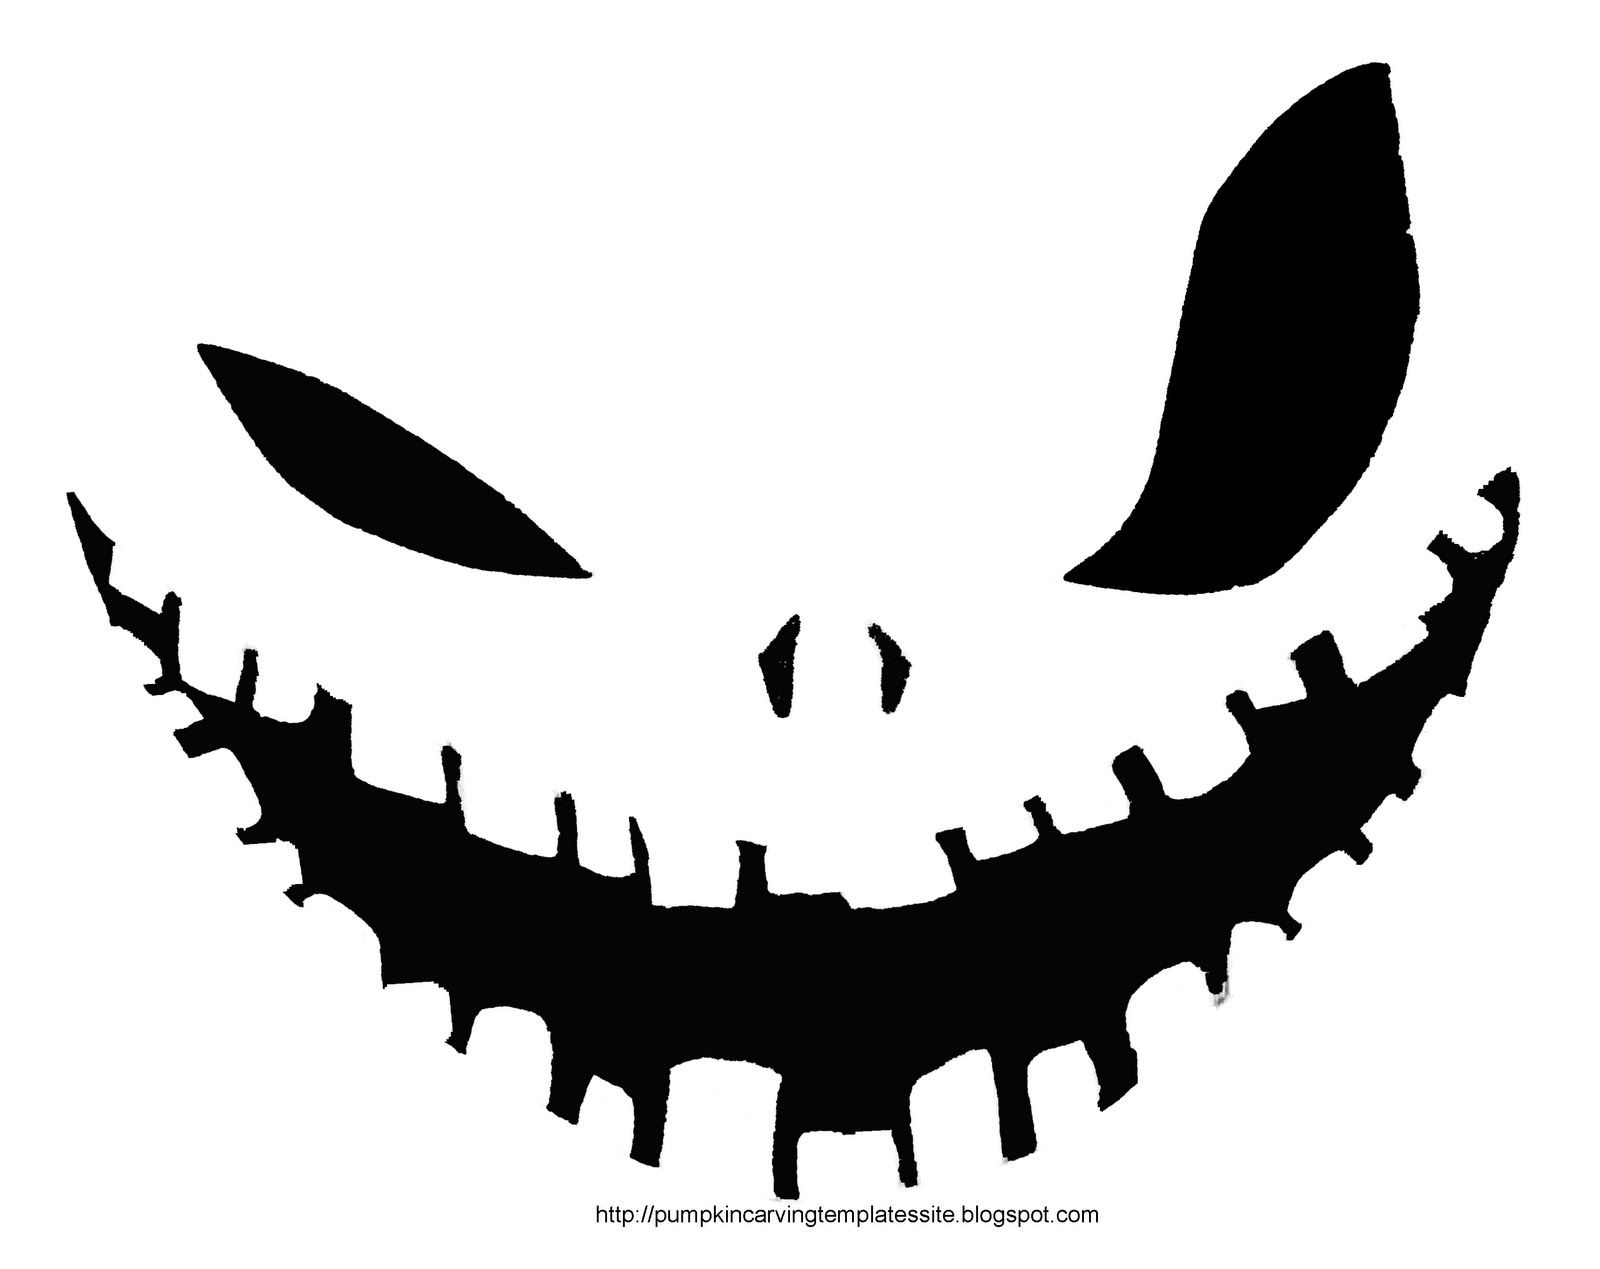 halloween pumpkin stencils to print pumpkin carving template stencil - Carving Templates Halloween Pumpkin